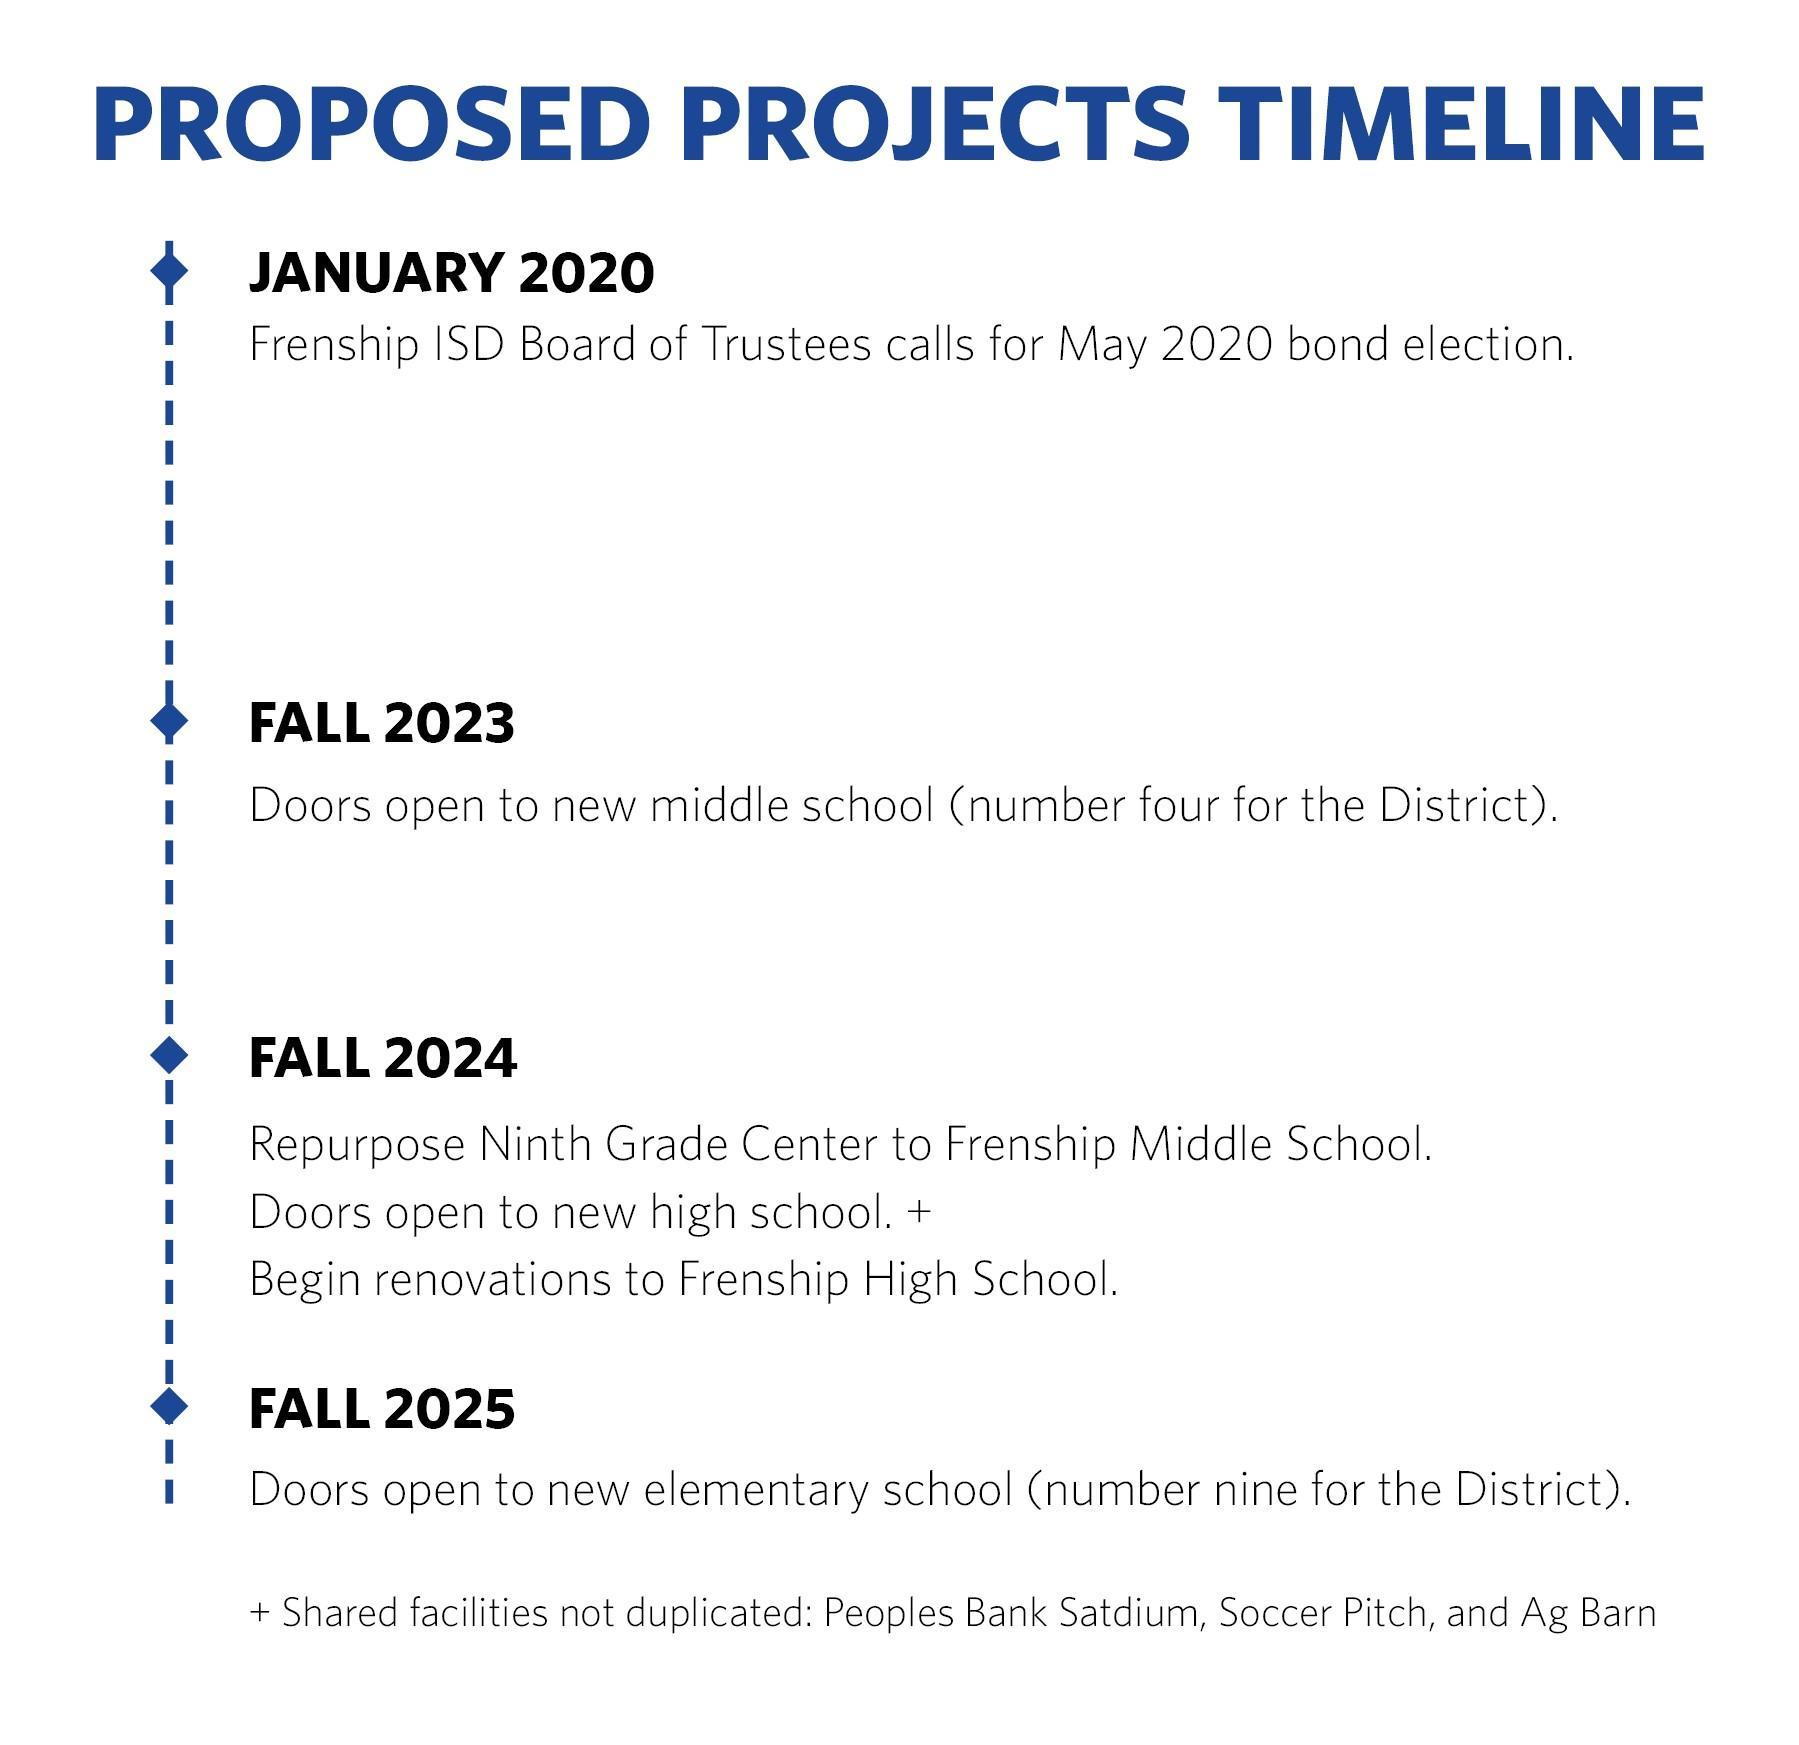 January 2020 Frenship ISD board of trustees calls for May 2020 bond election; Fall 2023 Doors open to new middle school, Fall 2024 repurpose NGC to FMS, Doors ope to new high school, begin renovations to FHS; Fall 2020 doors open to ninth elementary campus